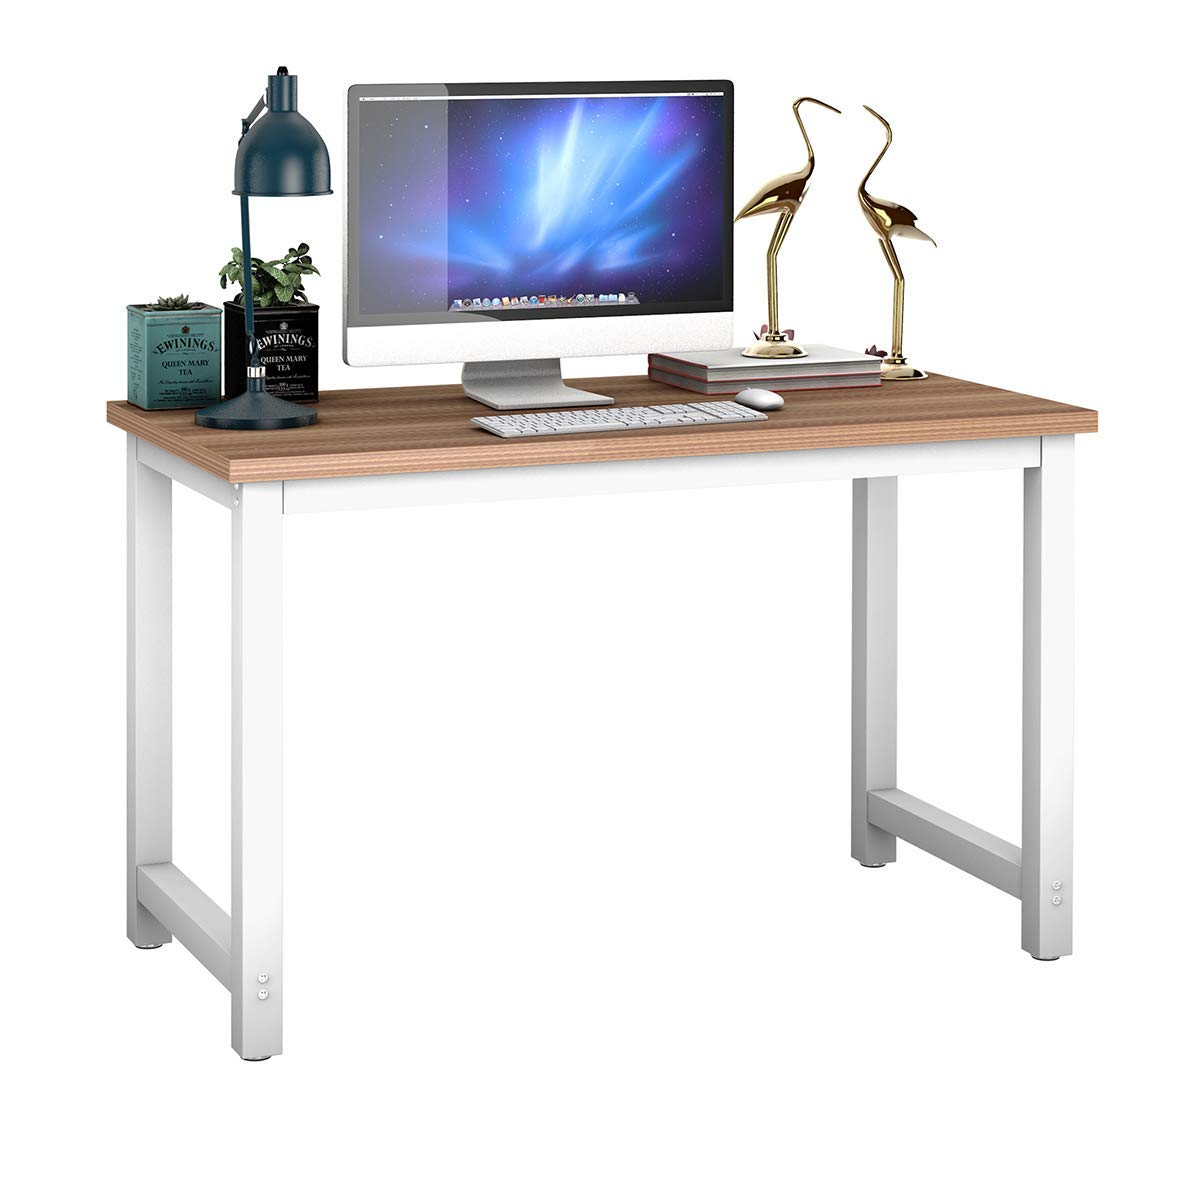 Tangkula 47.5'' Computer Desk Wooden Top Study Construction Portable Modern Design Laptop PC Table Rectangular Writing Table Study Home Office Workstation Furniture (Natural) by Tangkula